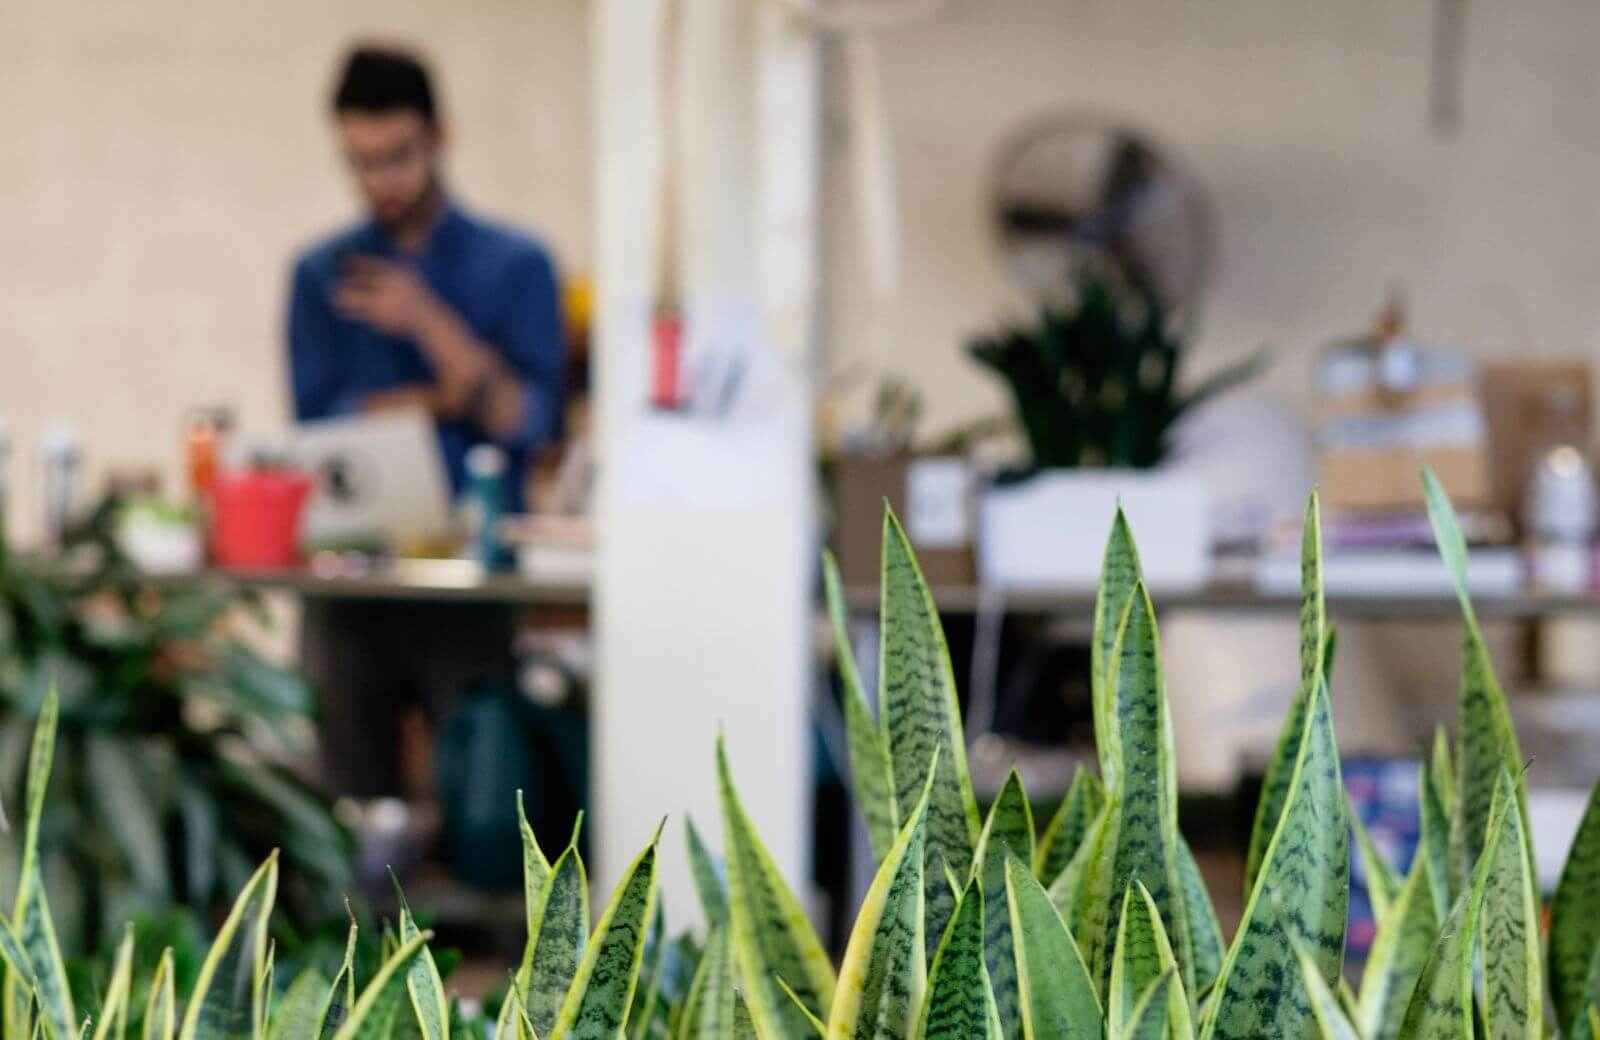 The-Sill-plants-for-your-office